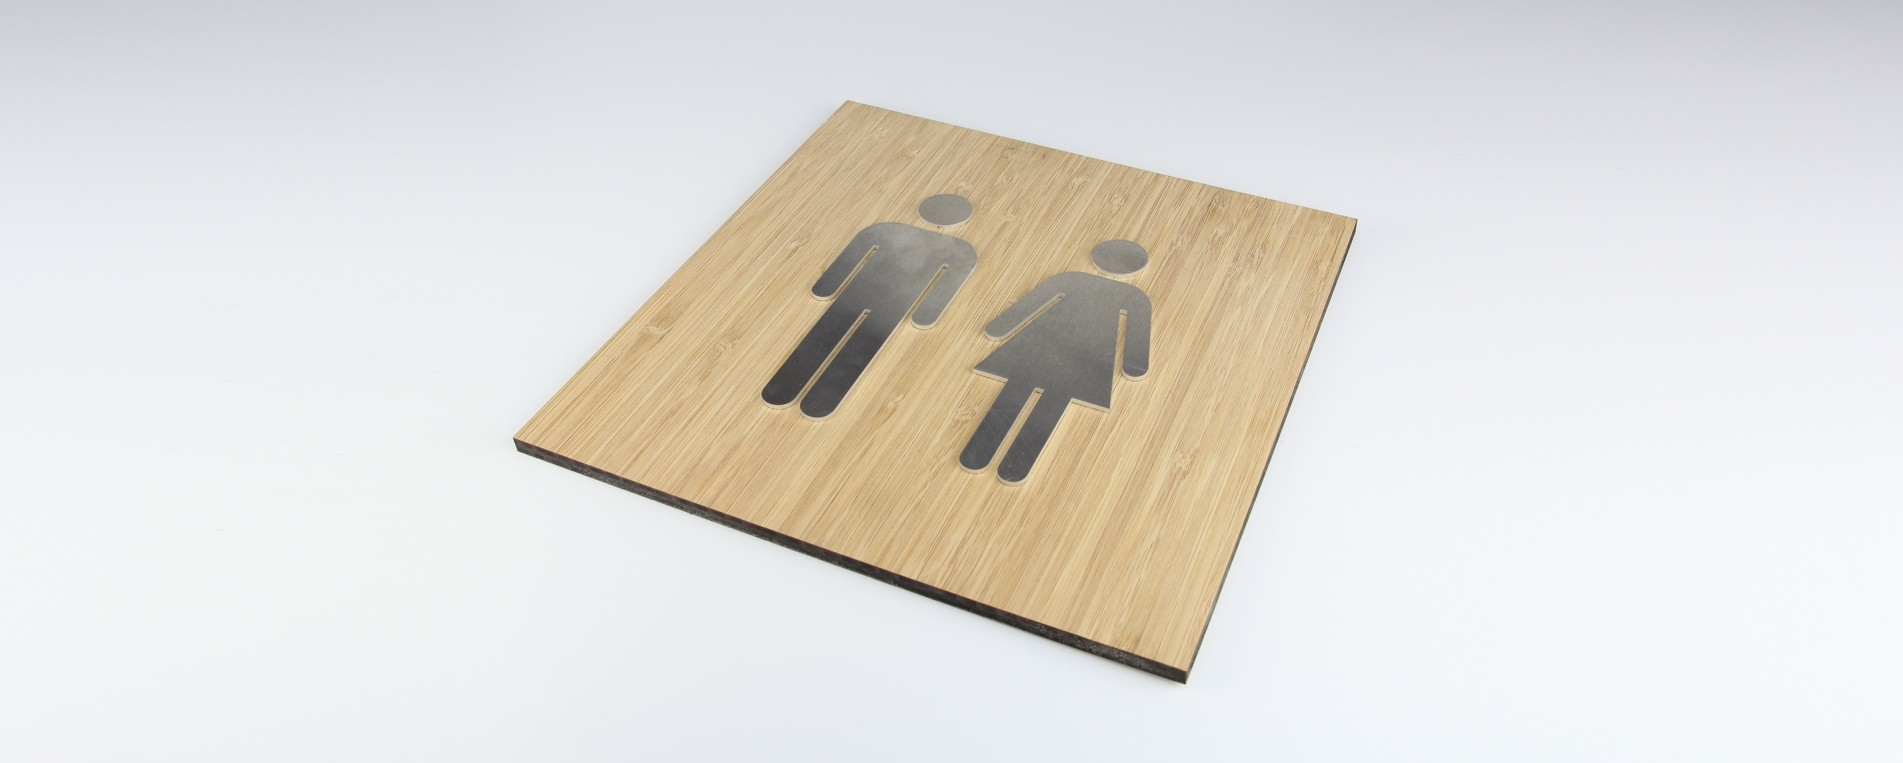 Laser cutting of a sign made of Aluminum and MDF